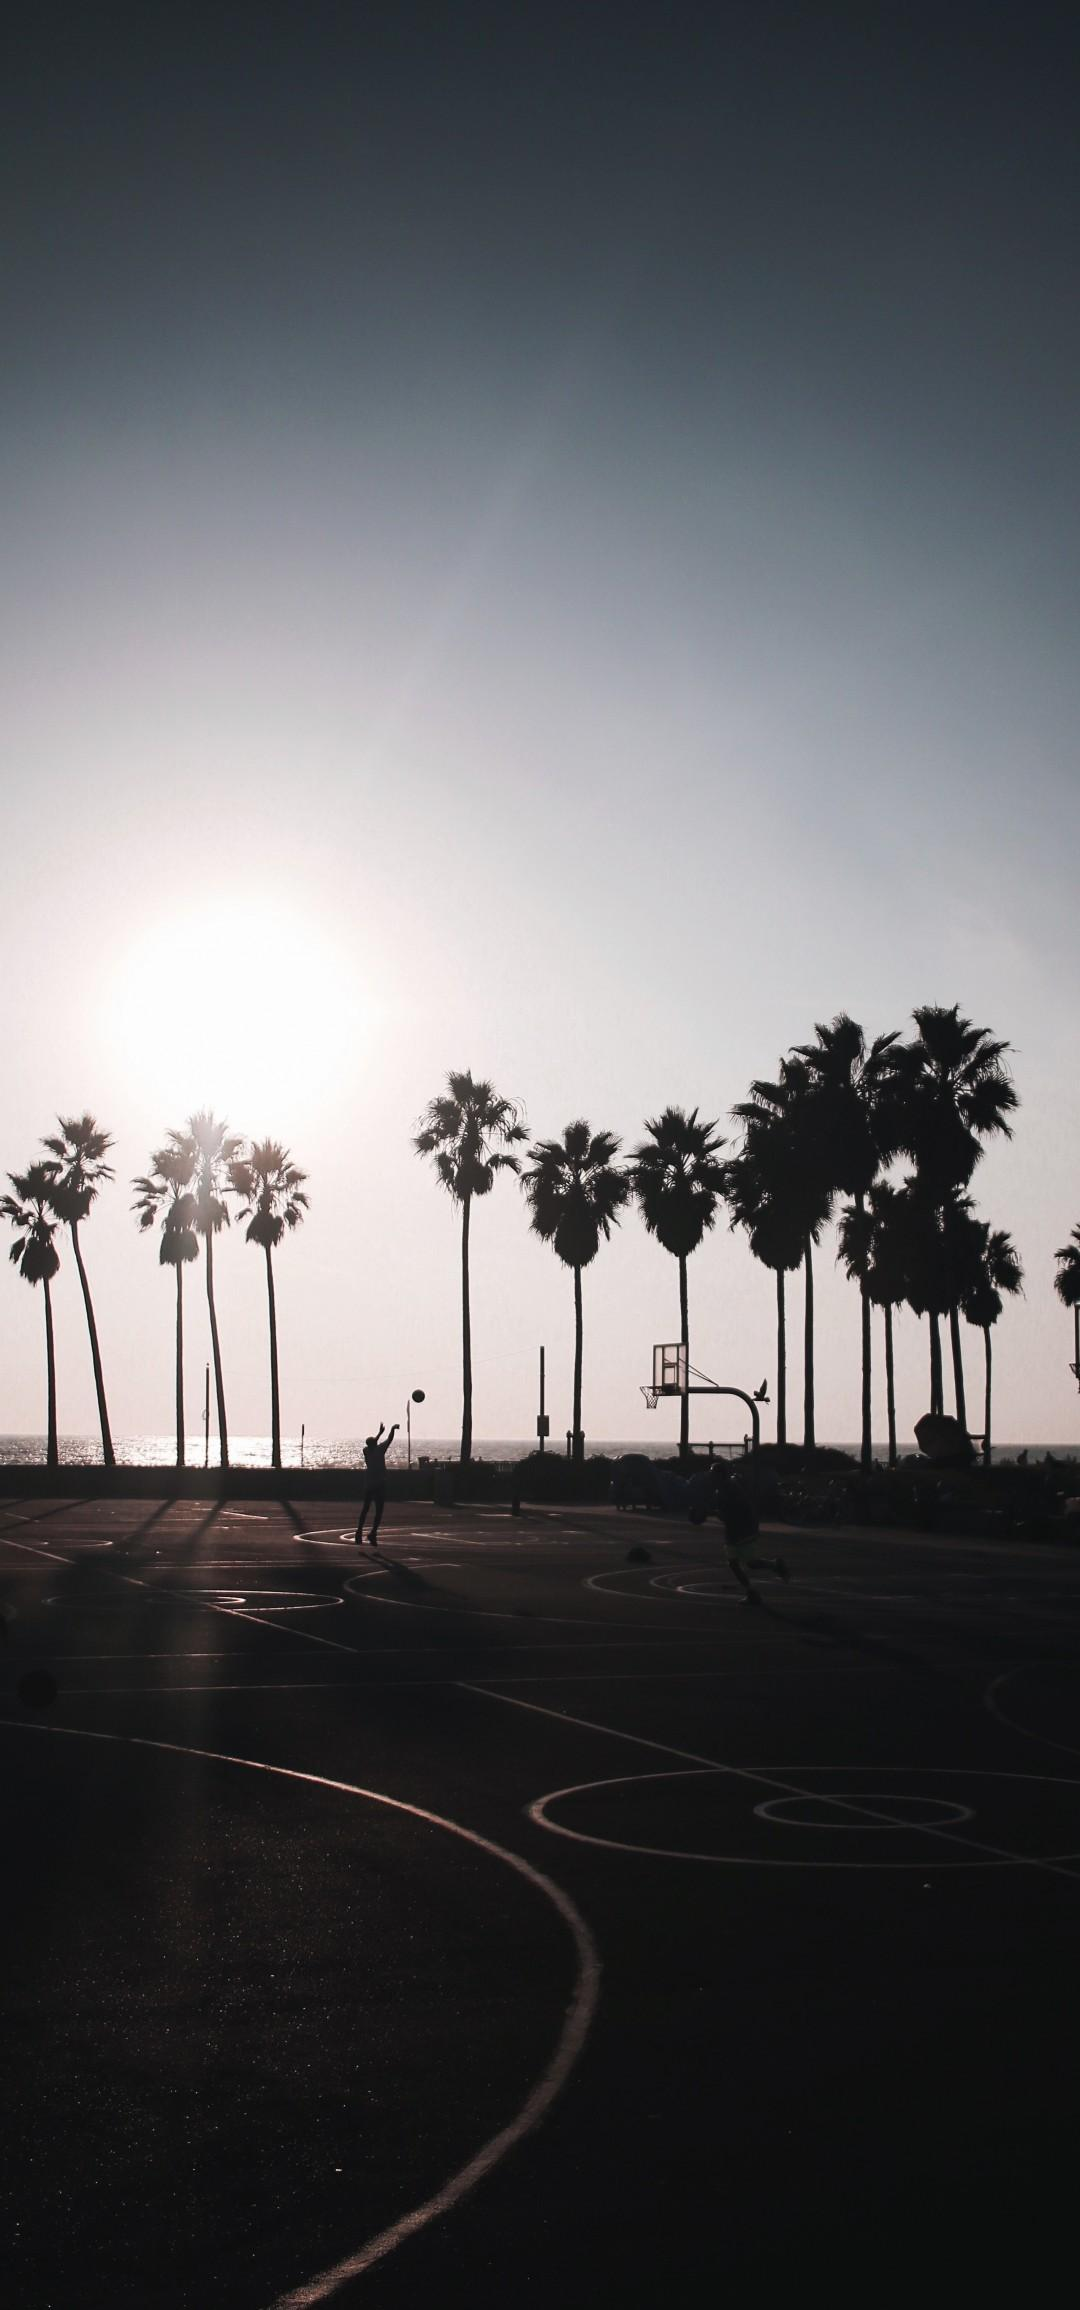 Download 1080x2310 Basketball, Palm Trees, Friends, Fun, Clear Sky